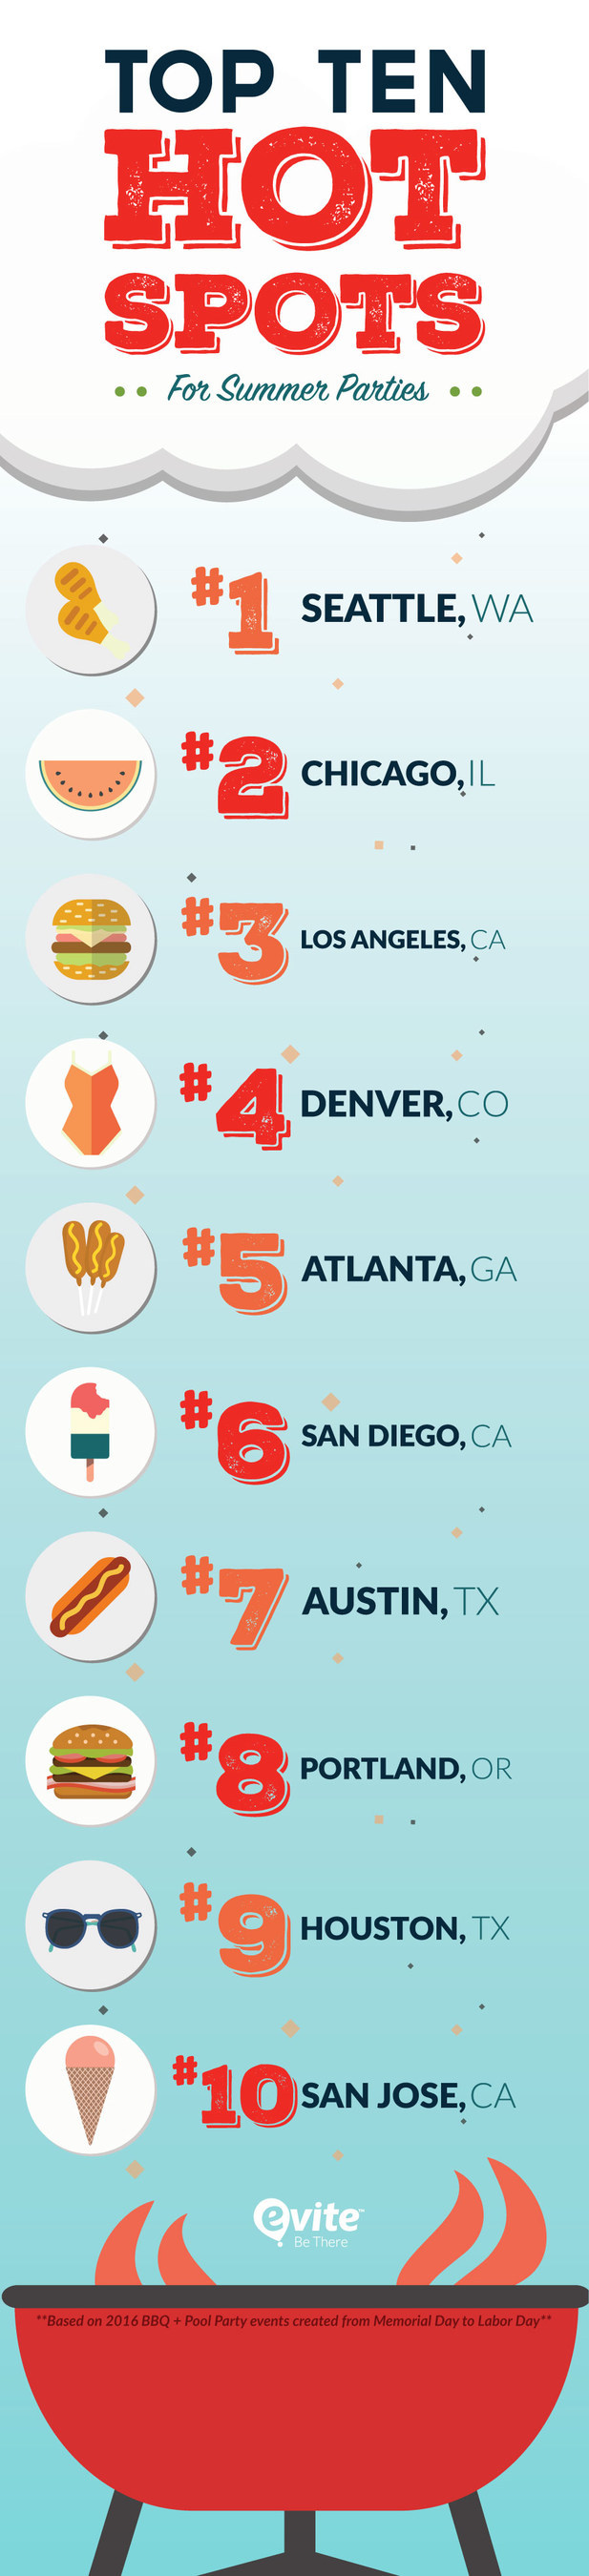 Evite® Announces Top 10 Cities for Summer BBQ/Pool Parties